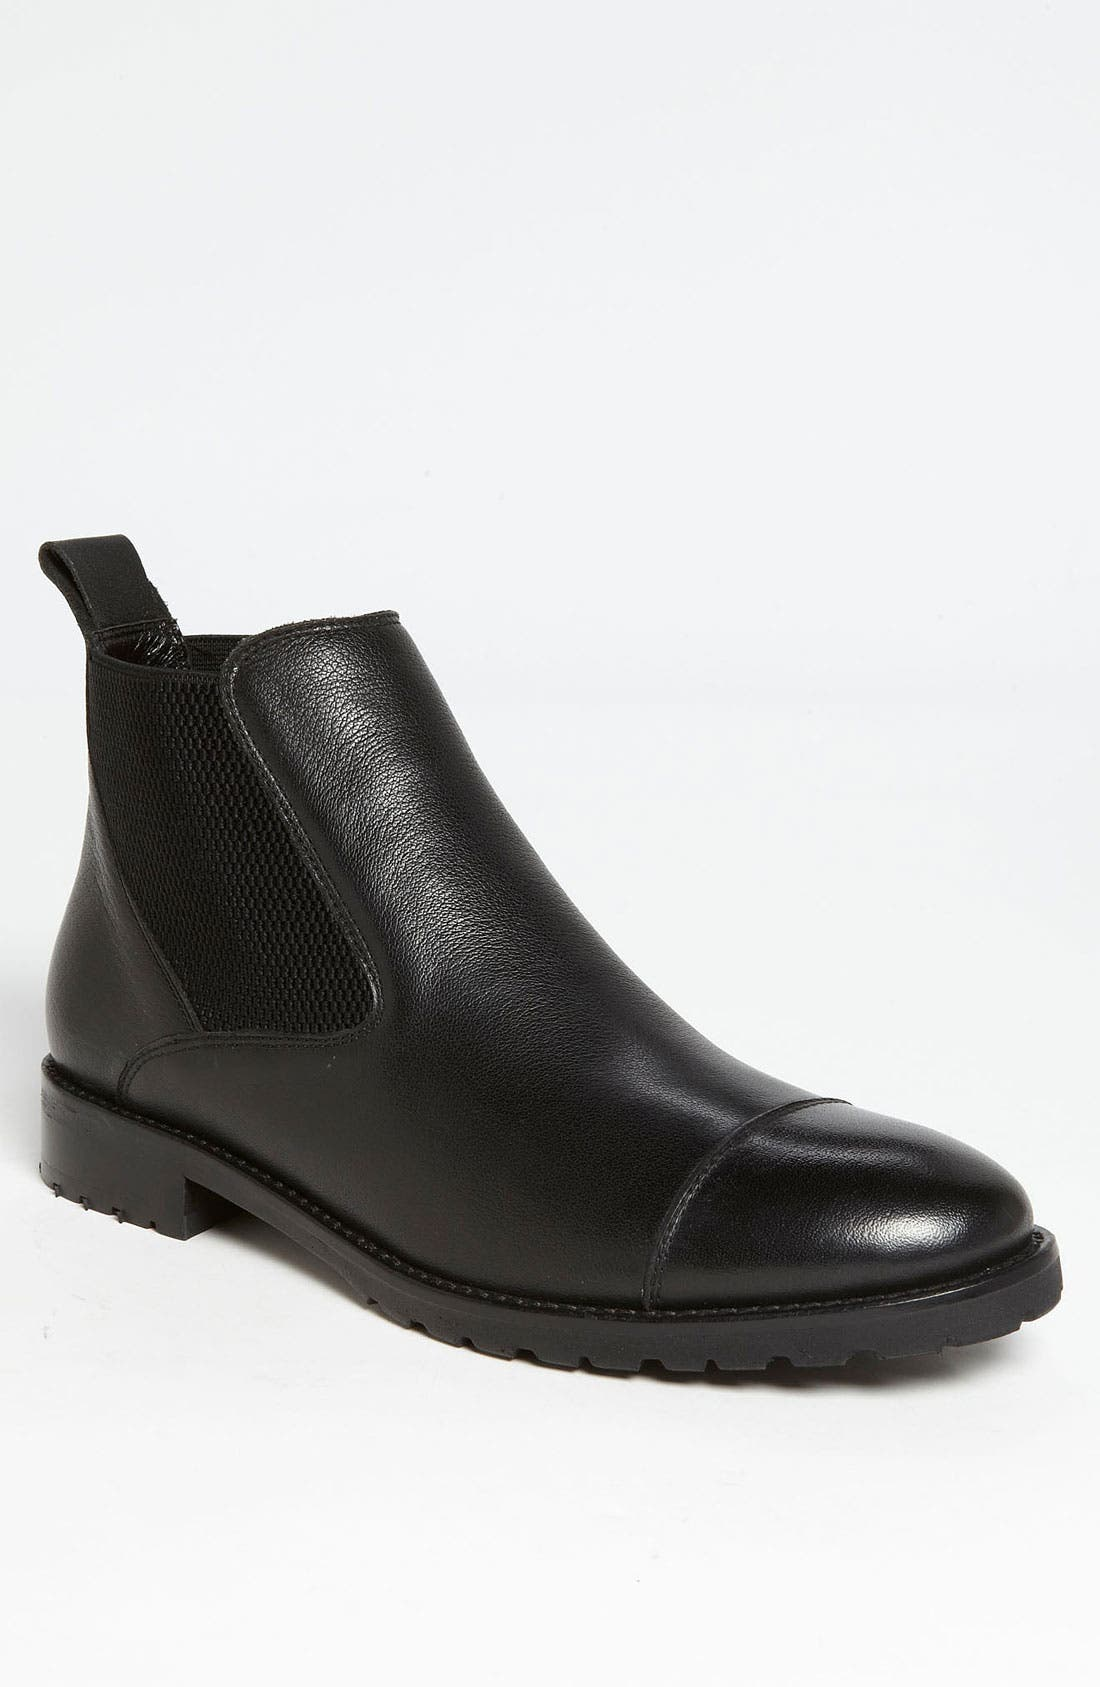 Alternate Image 1 Selected - Maison Forte 'Carlos' Chelsea Boot